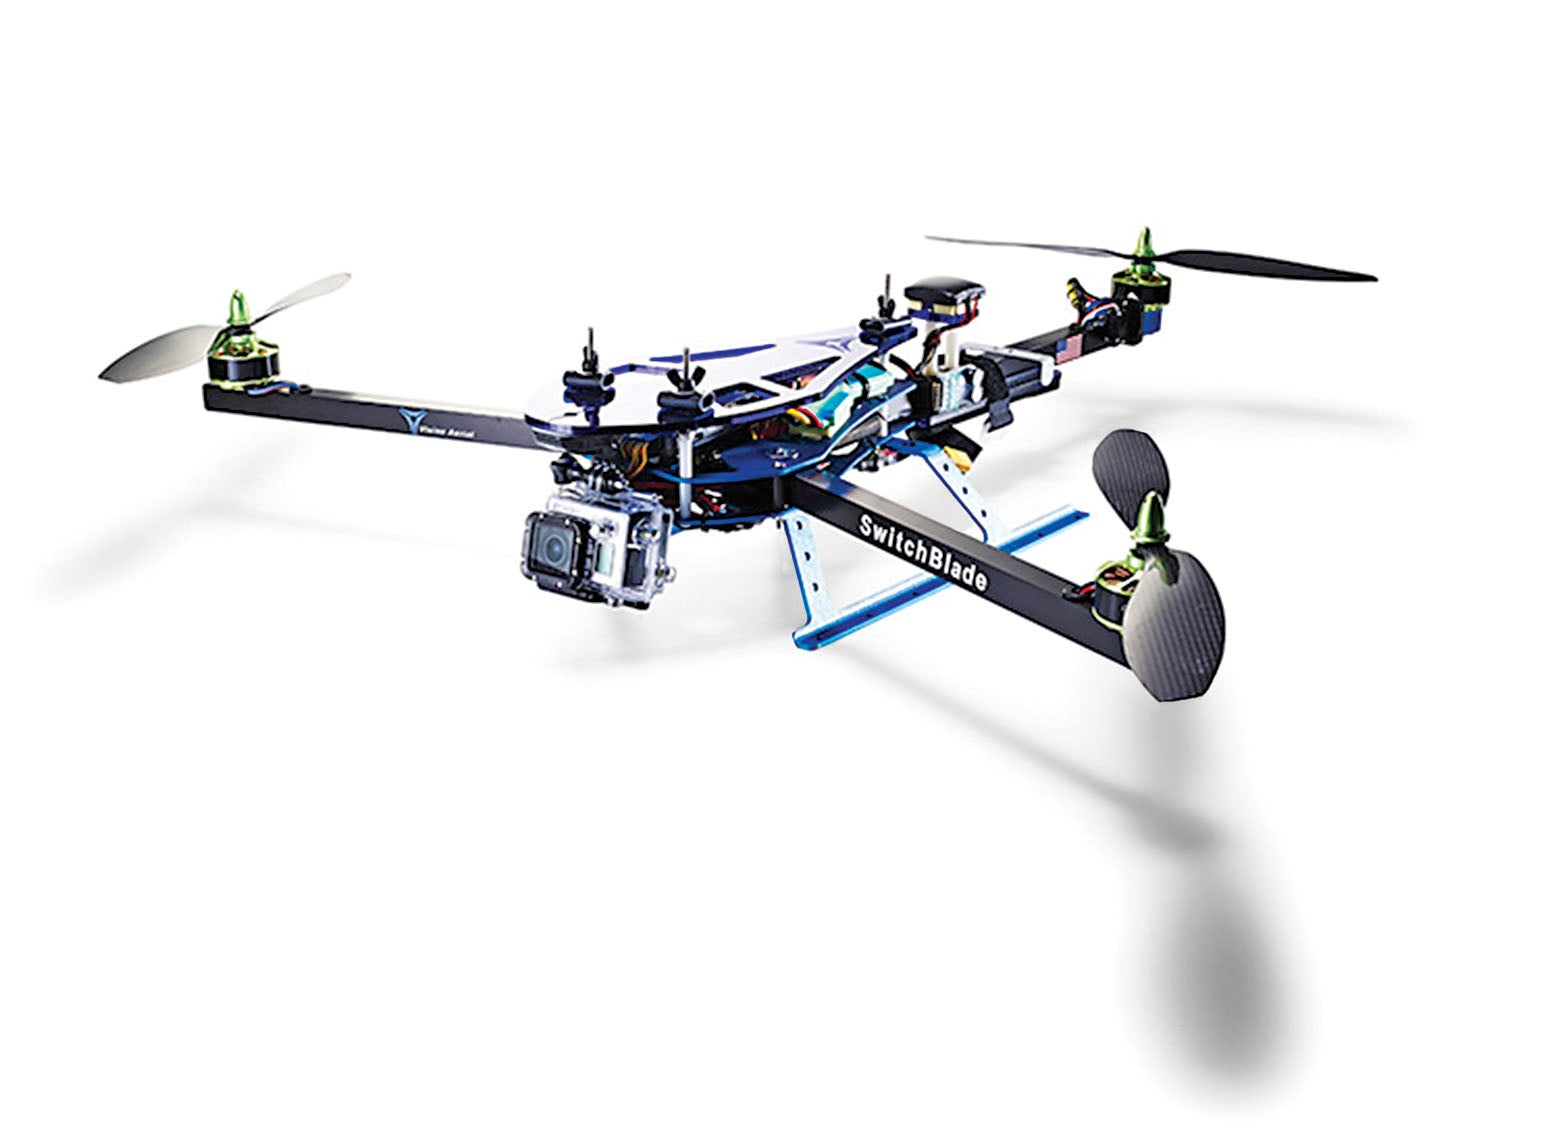 Vision Aerial SwitchBlade-Pro